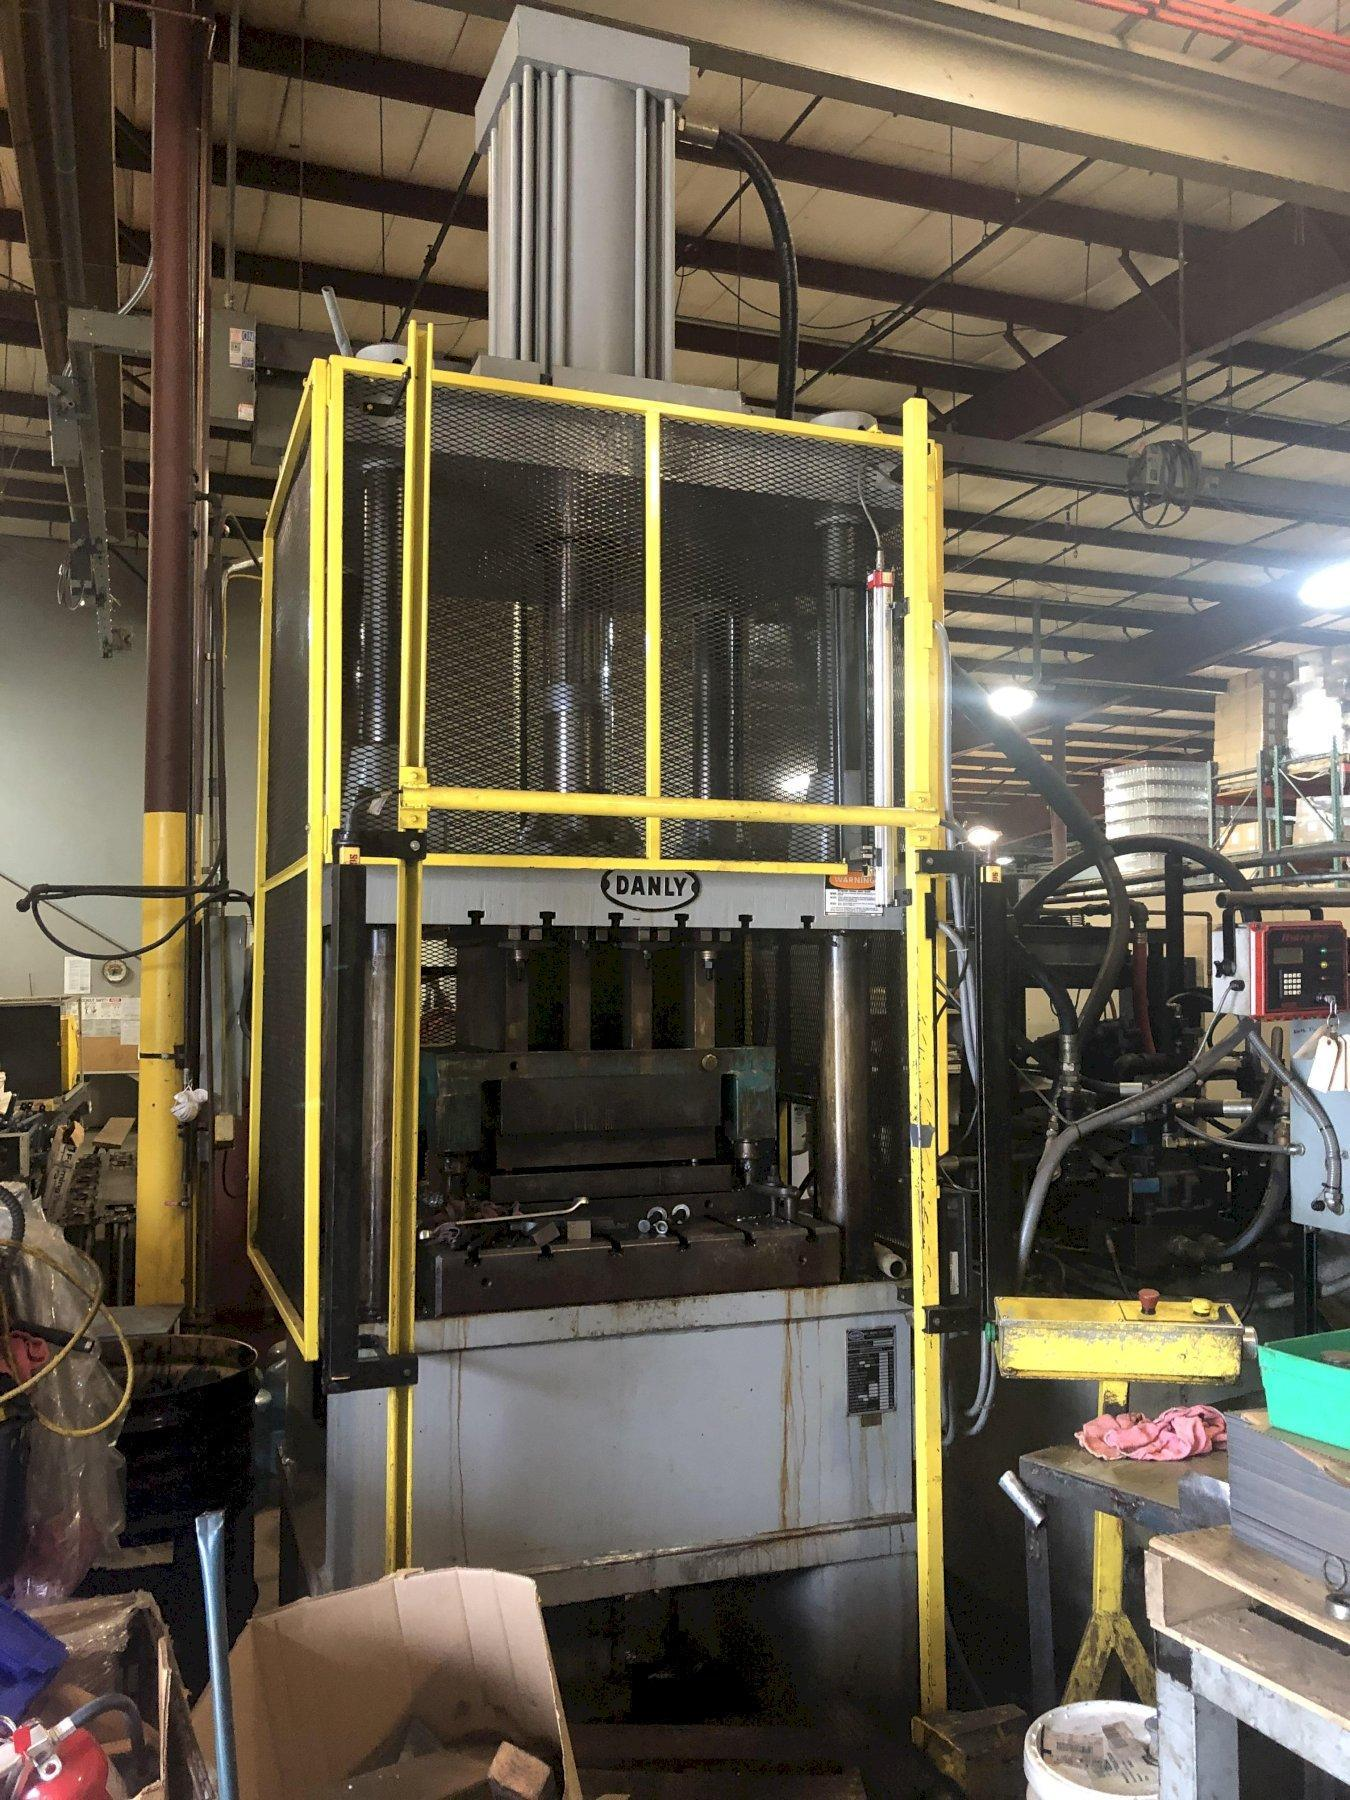 "200 TON DANLY HYDRAULIC PRESS, 36"" X 44"" BED, 24"" STROKE,  53"" DAYLIGHT, UPDATED CONTROLS"